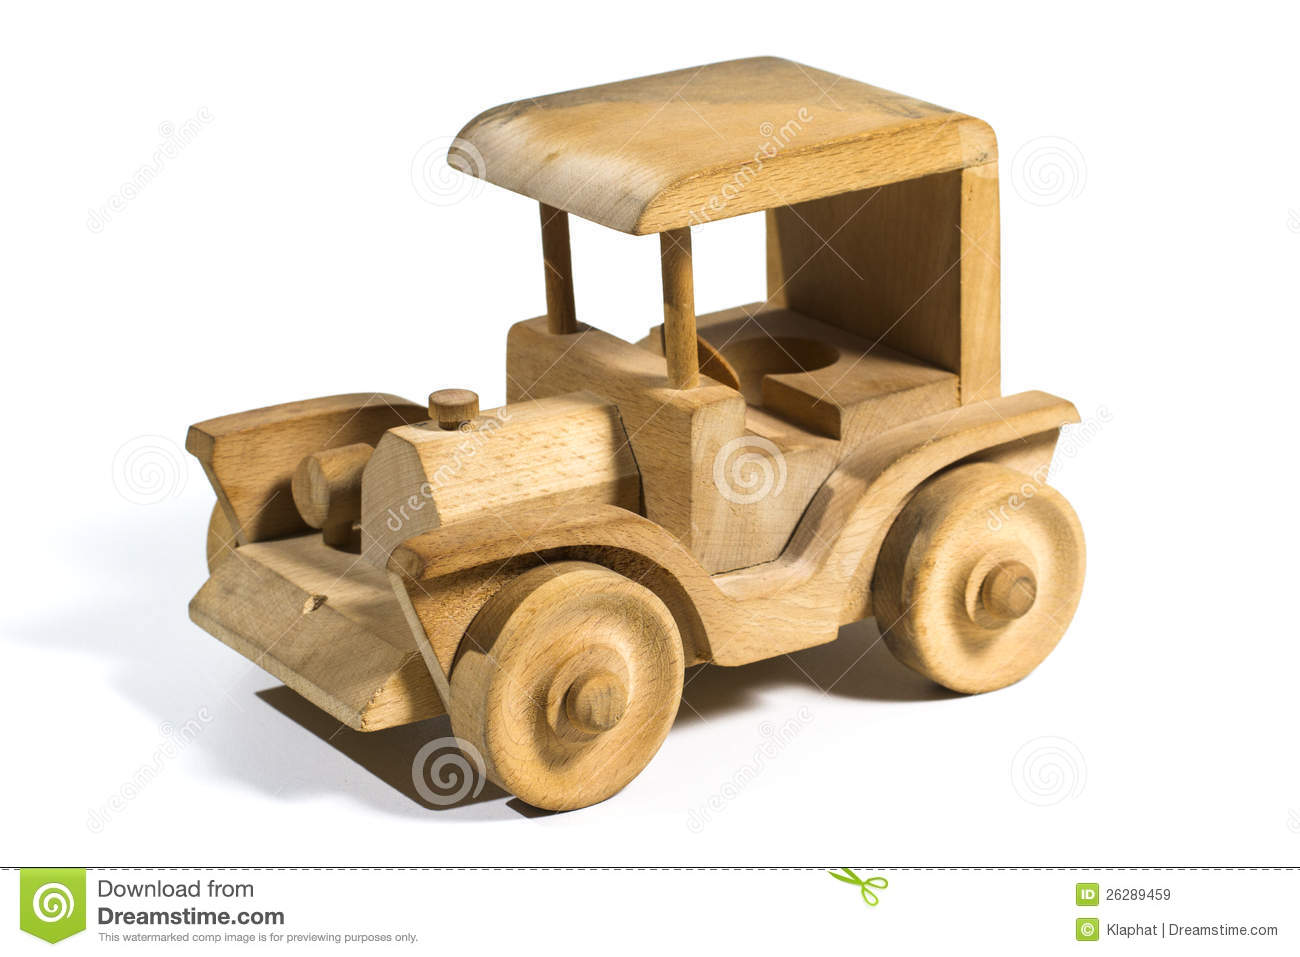 https://thumbs.dreamstime.com/z/wooden-toy-car-26289459.jpg